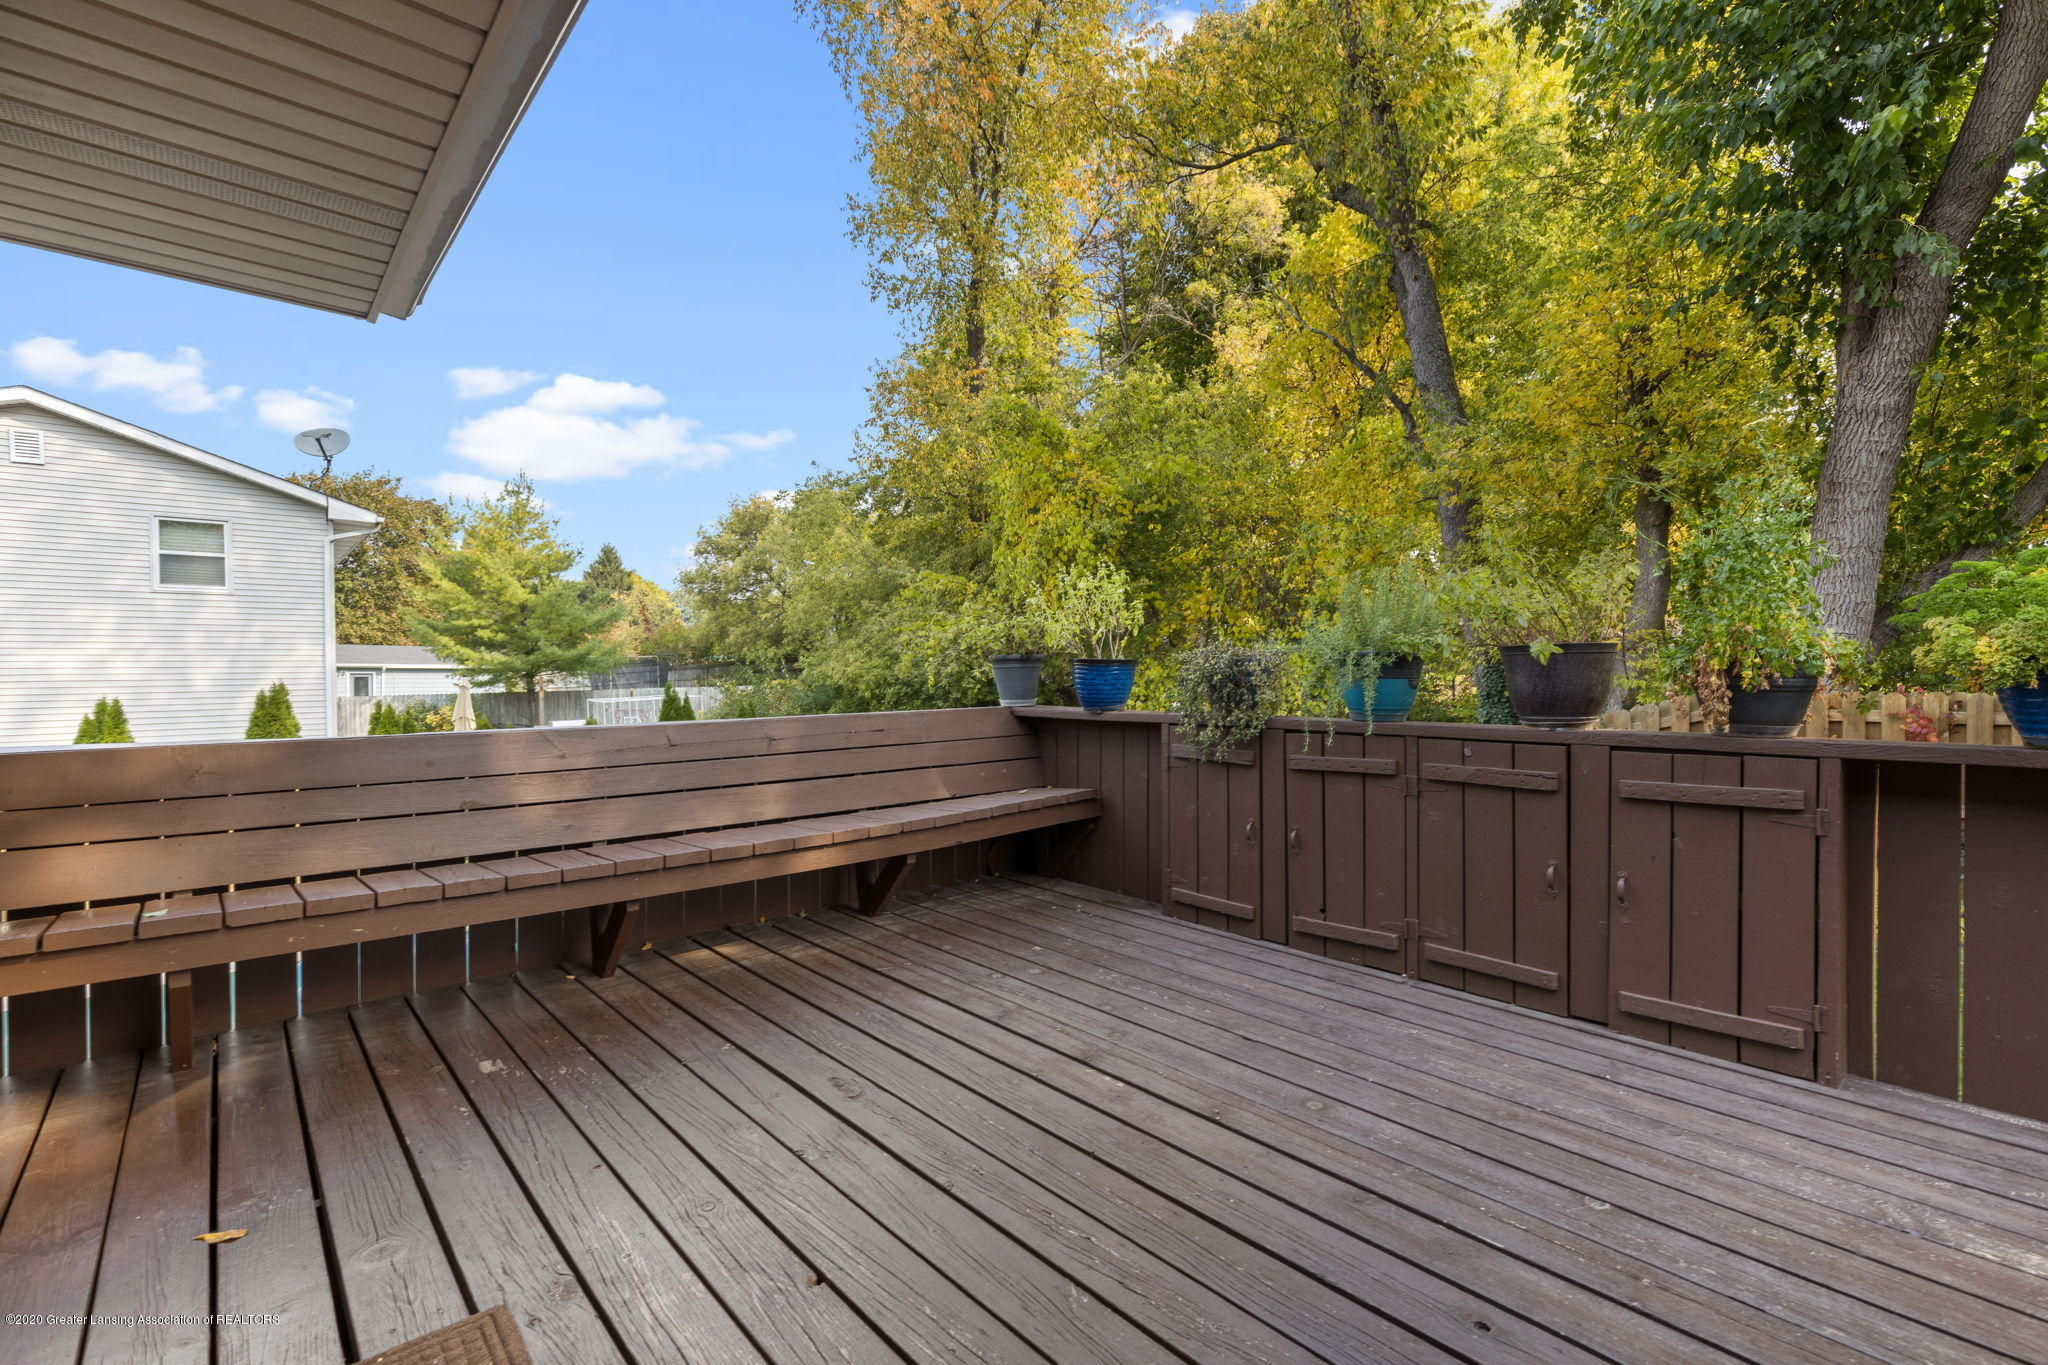 617 Green St - 11-web-or-mls-1P6A9445 - 24